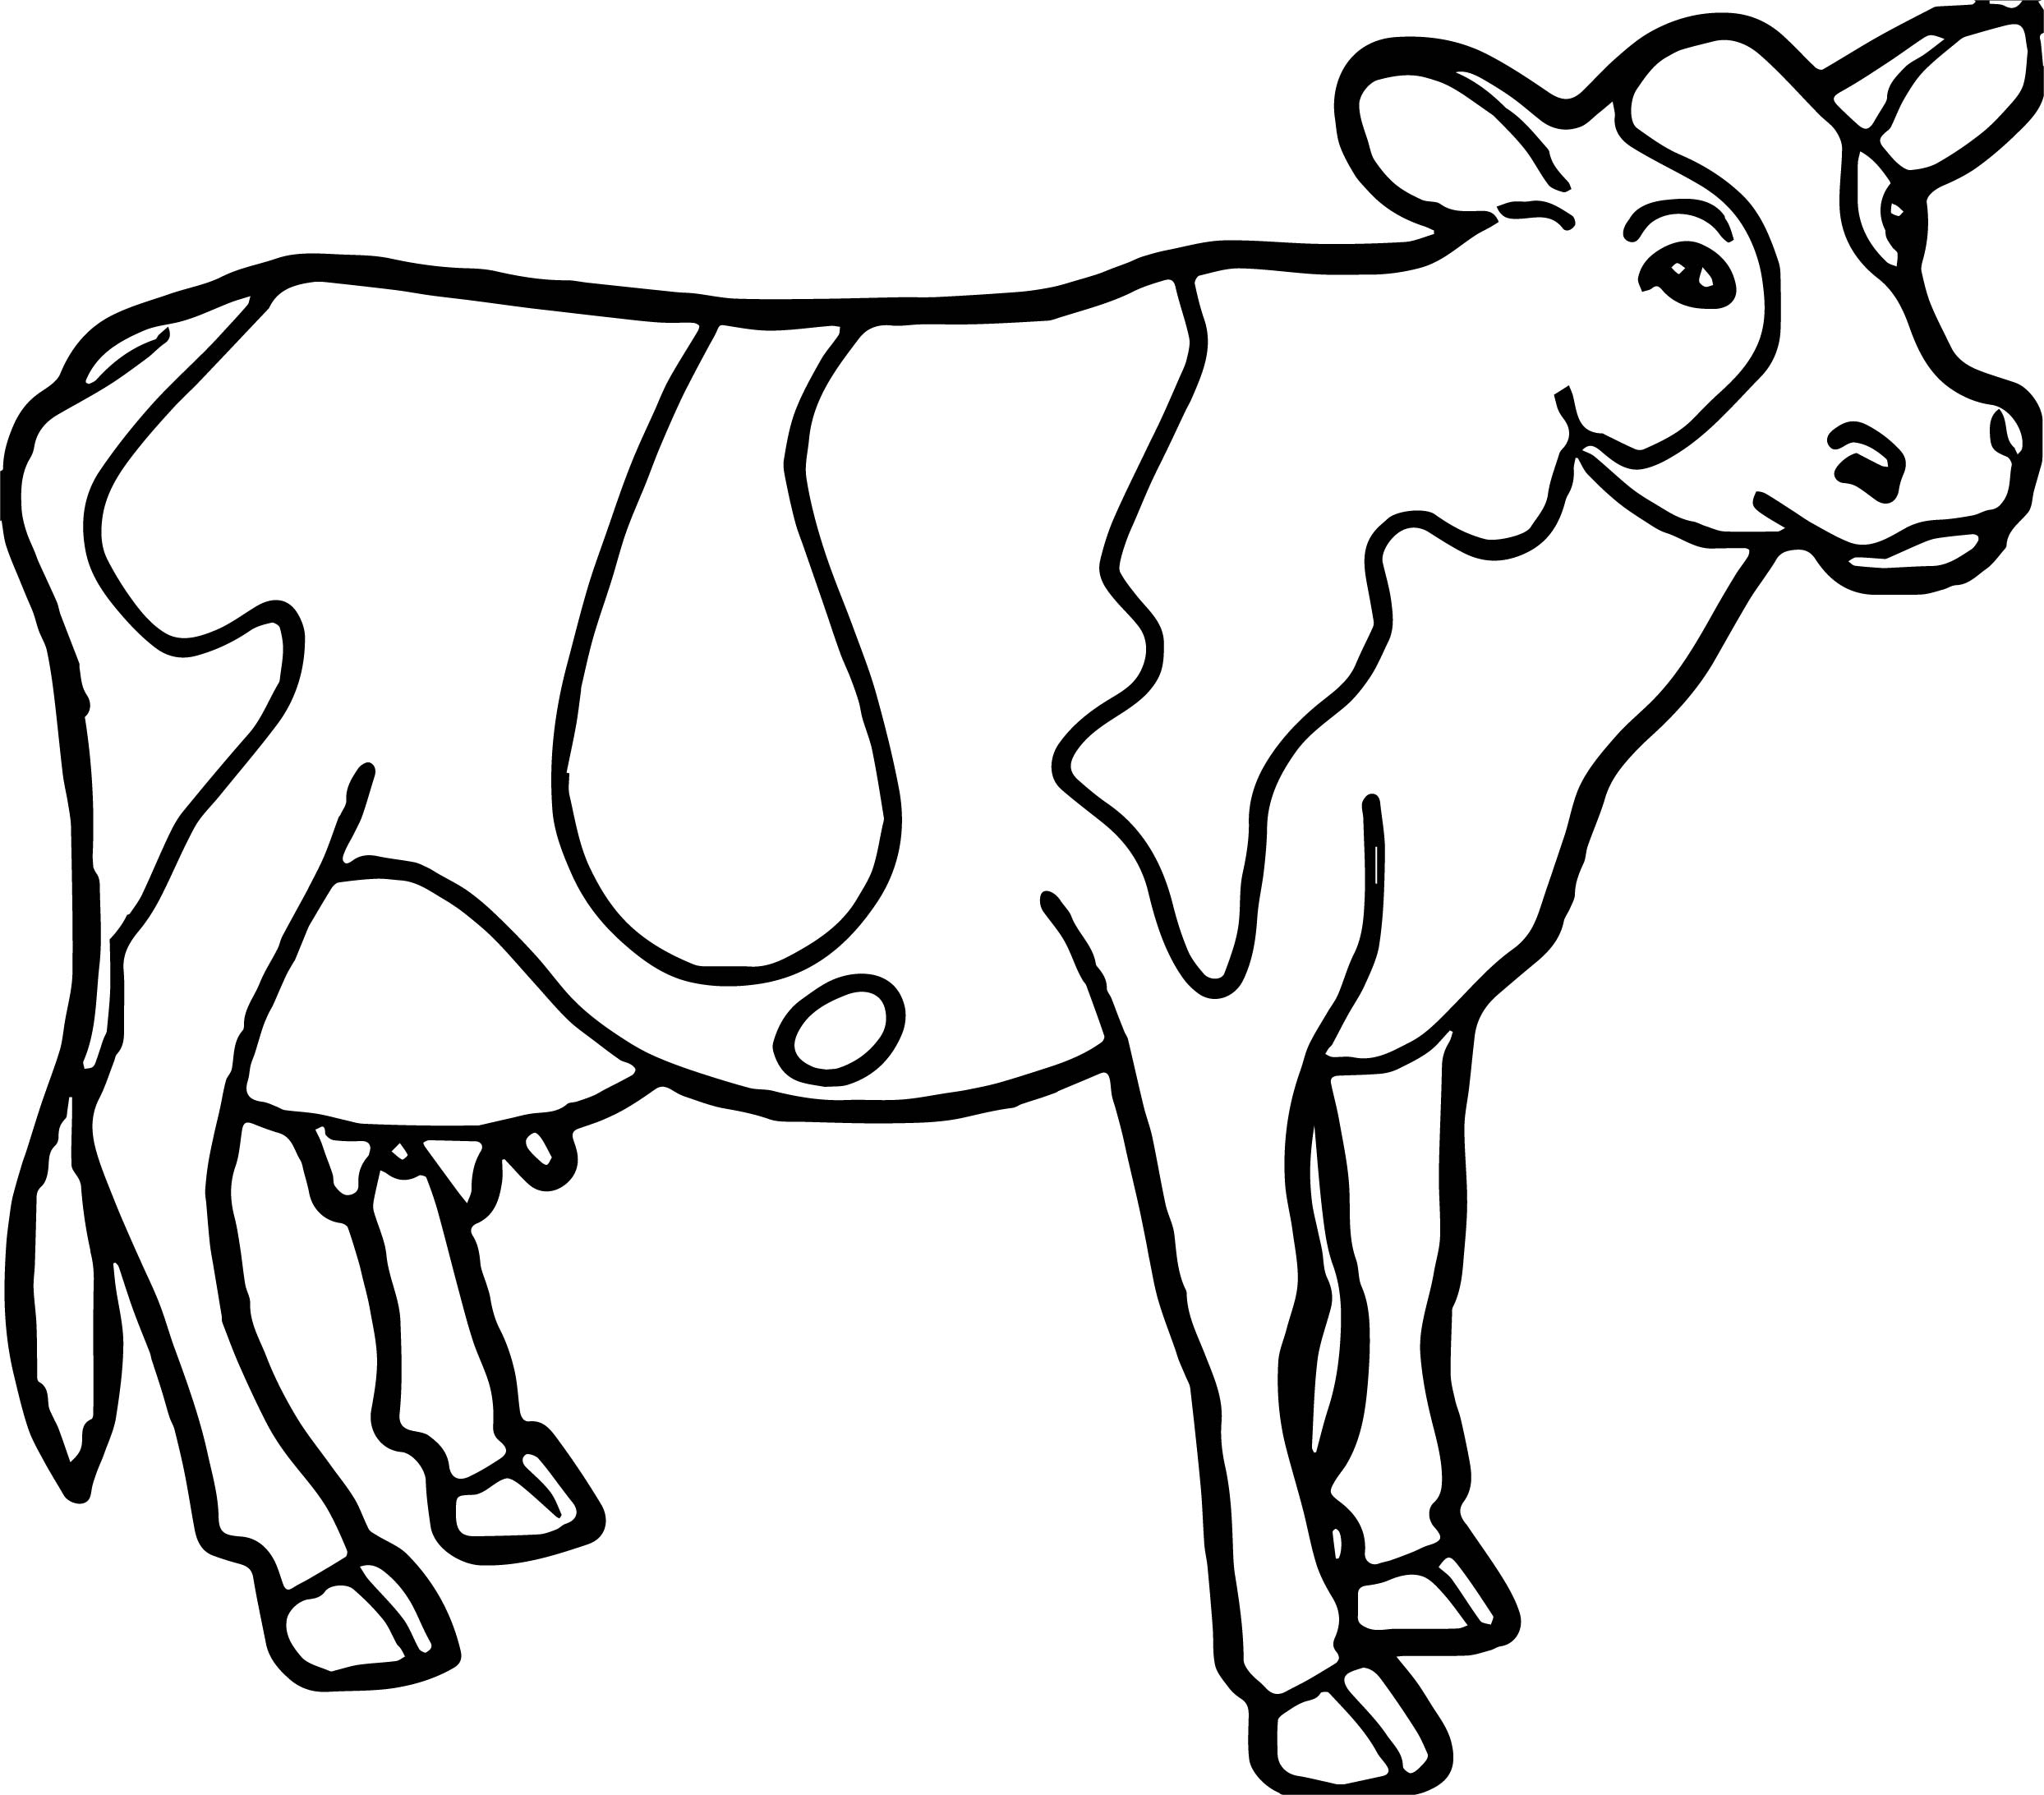 Cow Farm Animal Coloring Page Wecoloringpage